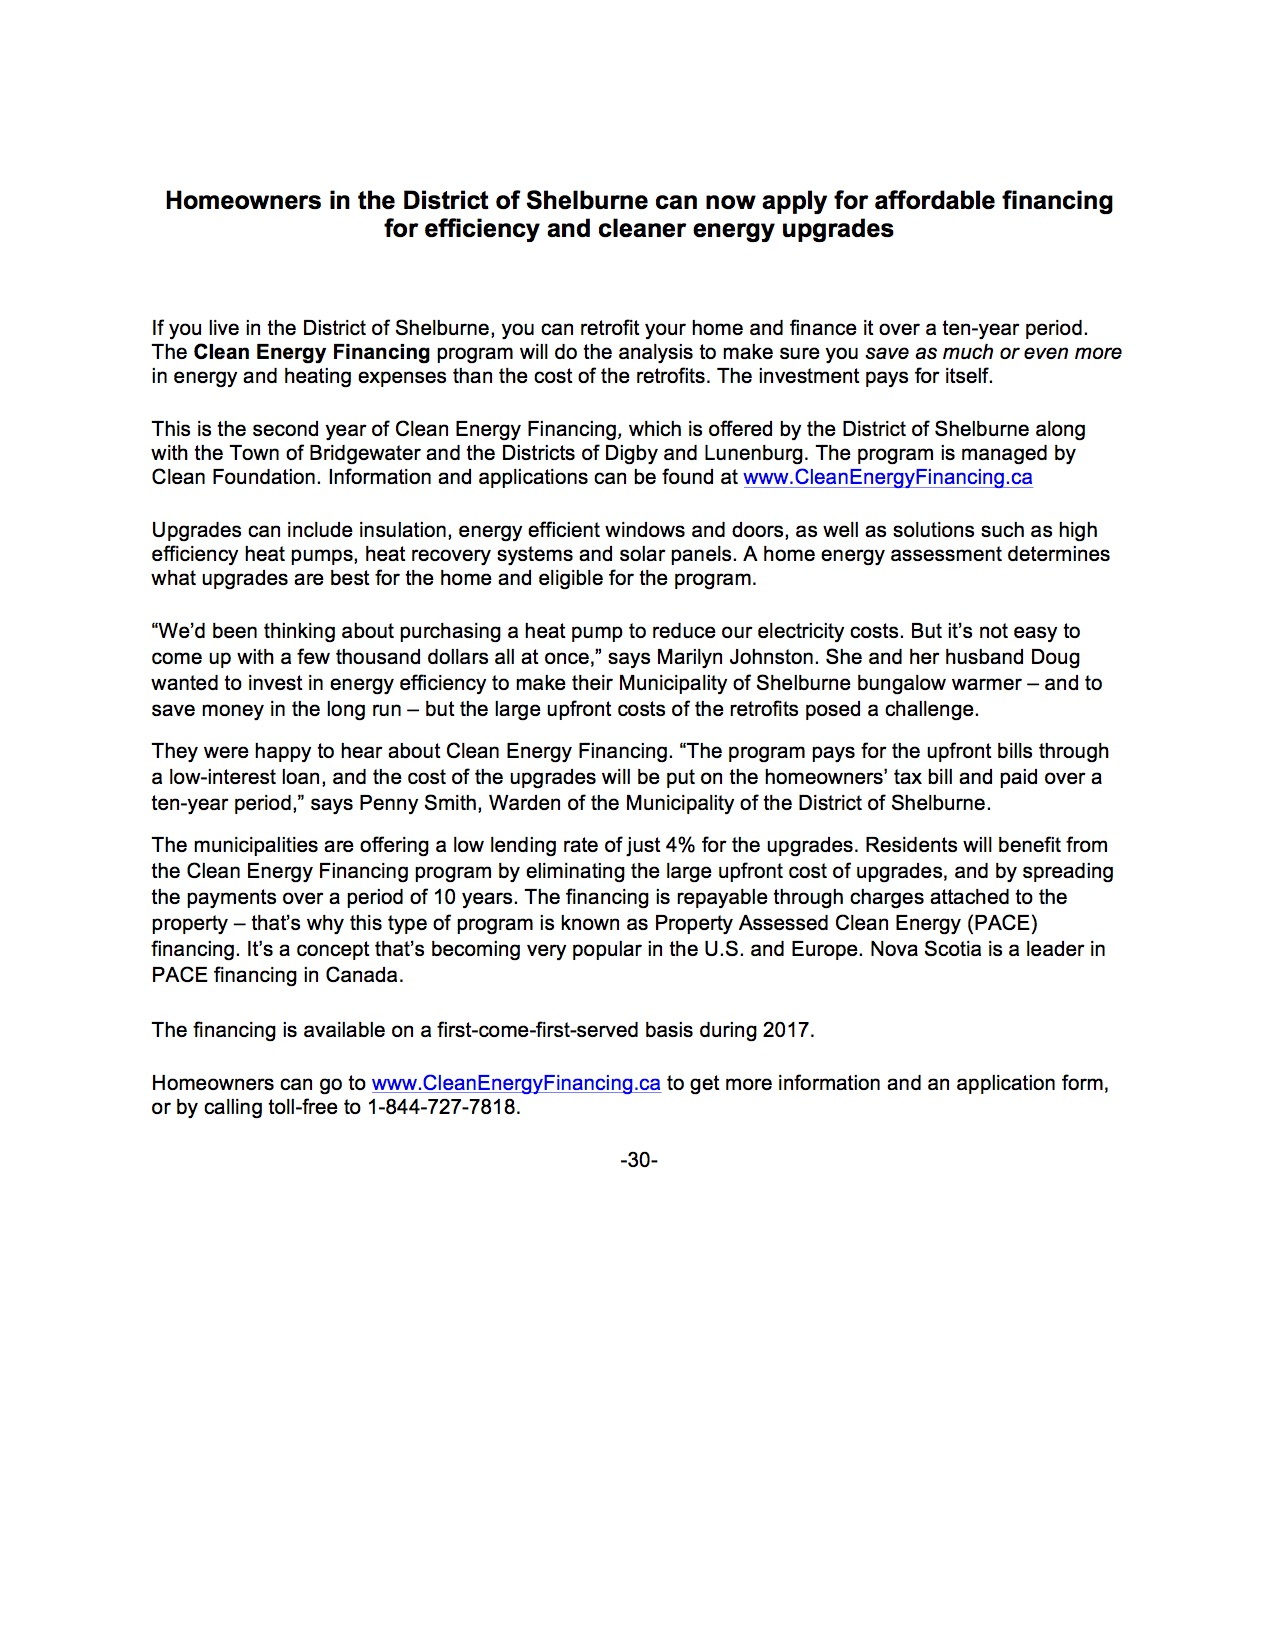 CEF Press Release Shelburne